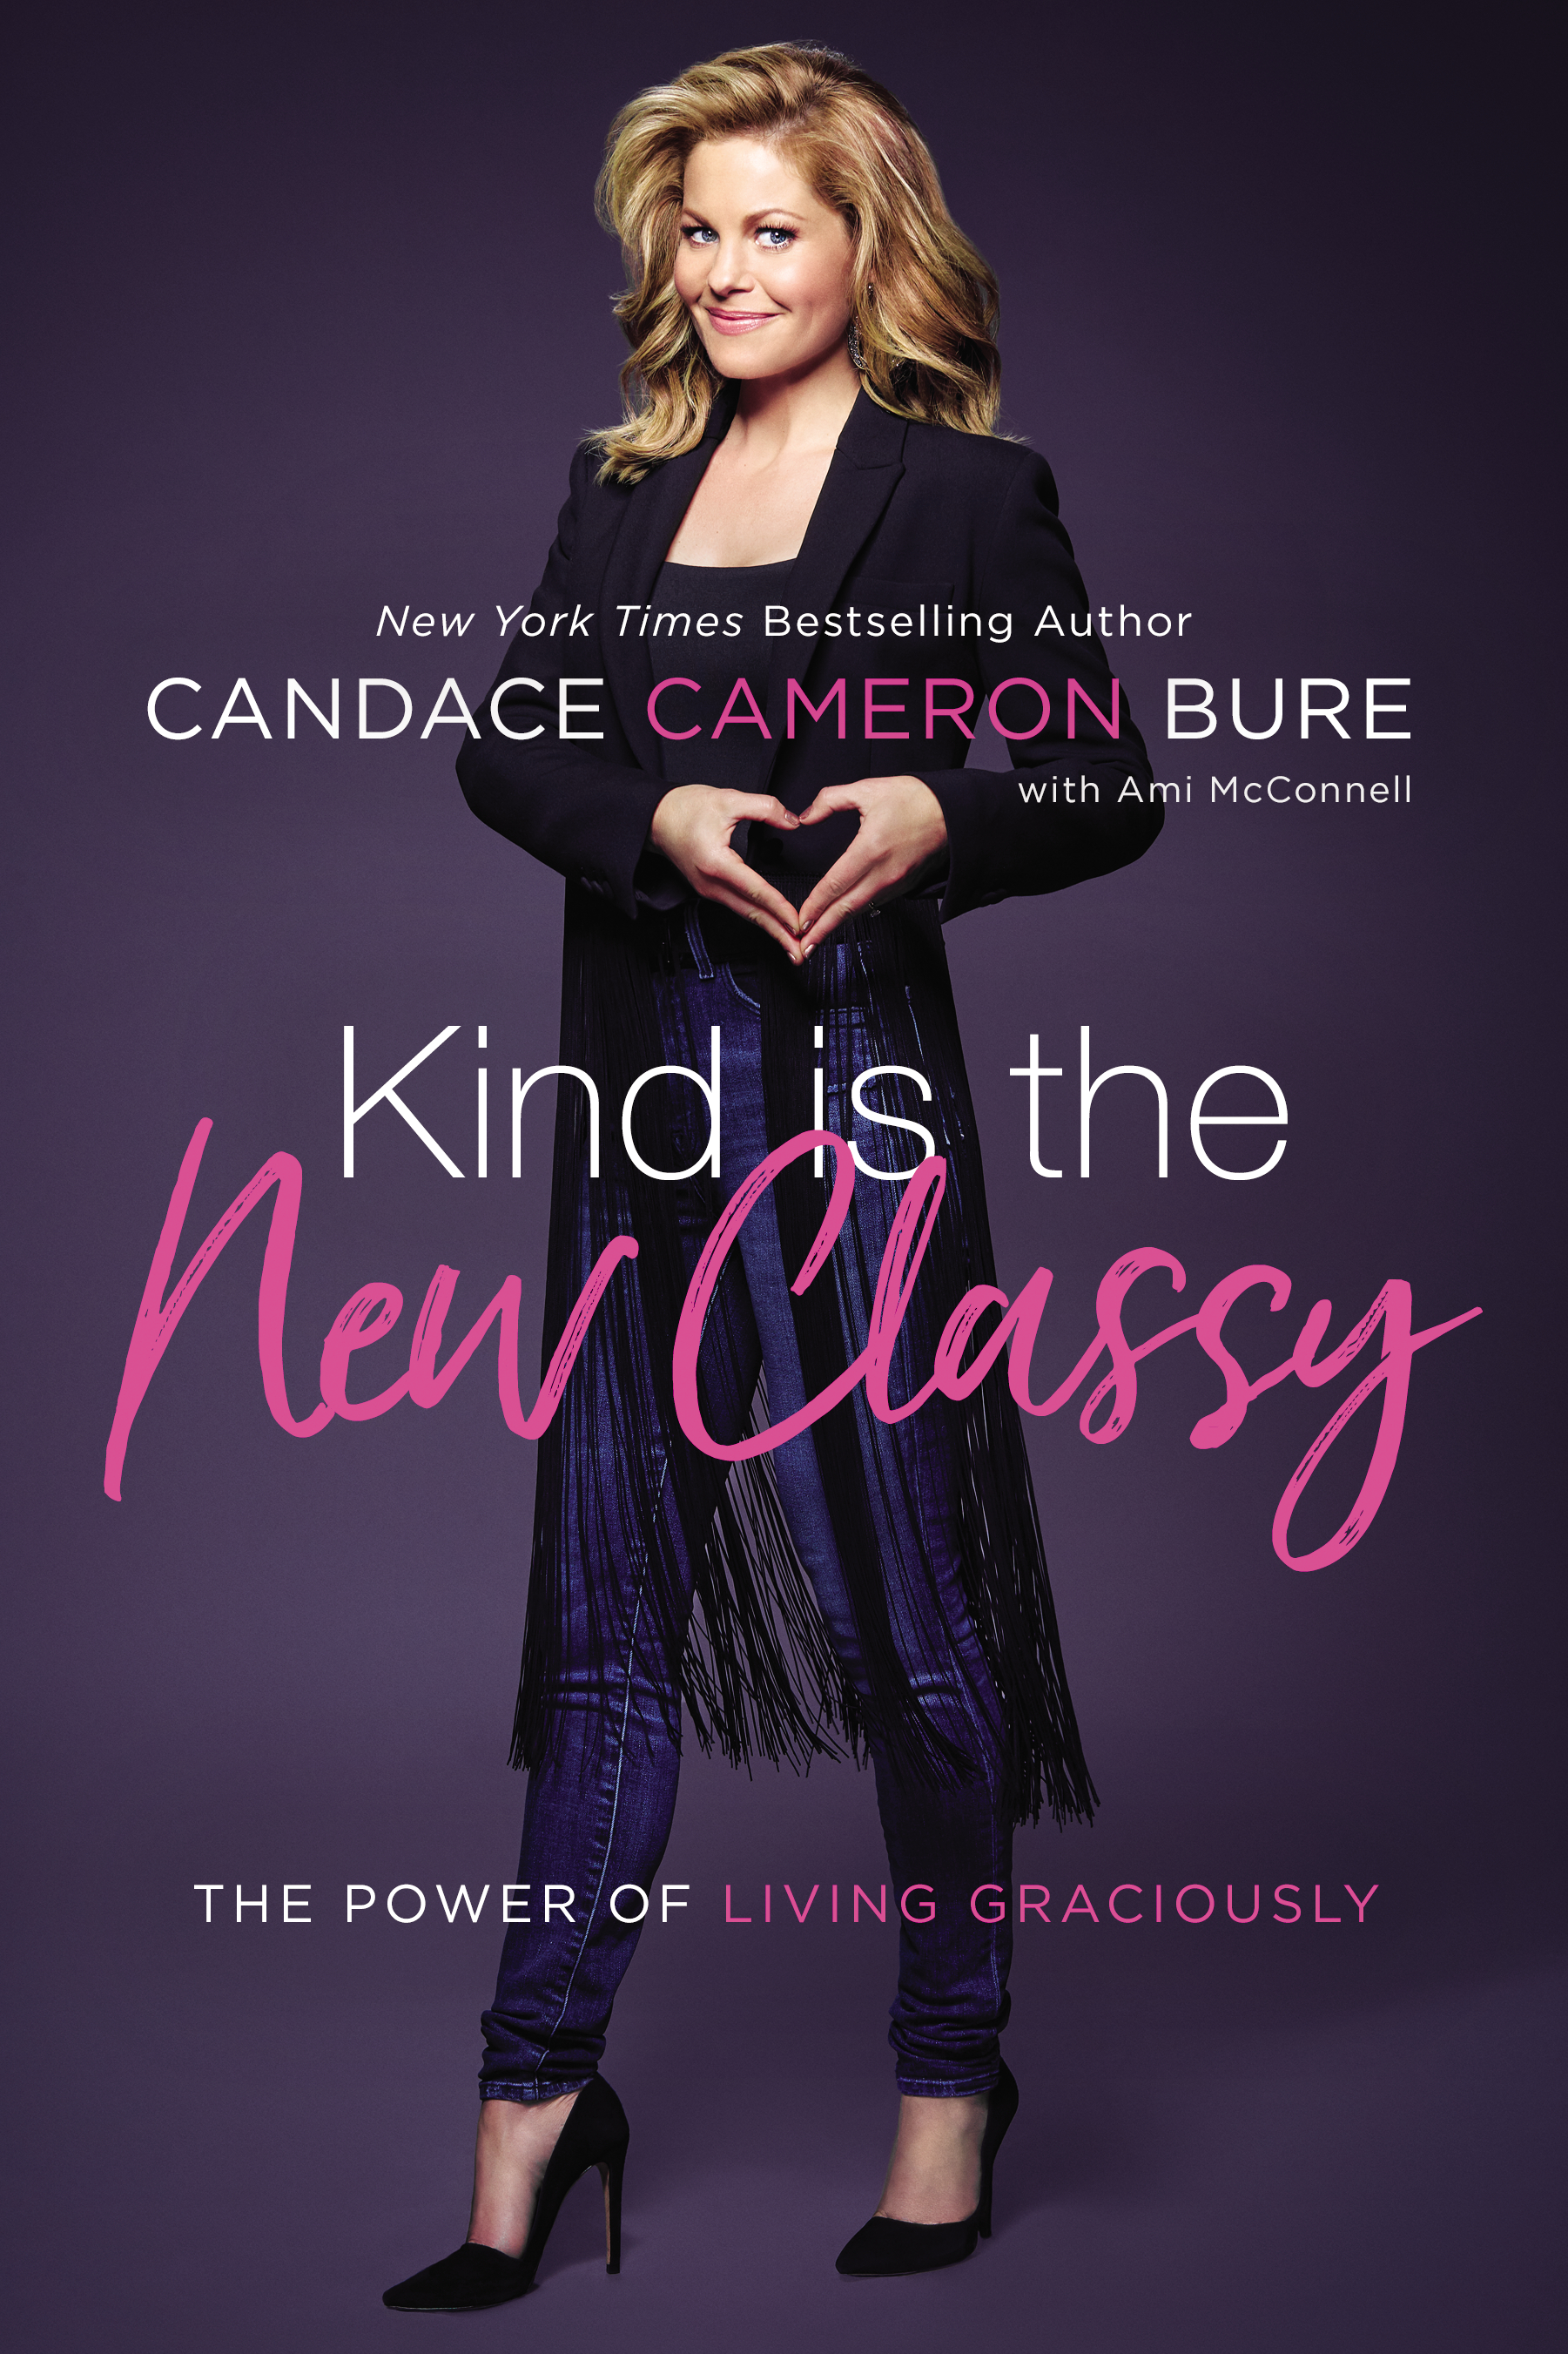 Candace Cameron Bure - Kinds is the New Classy book cover